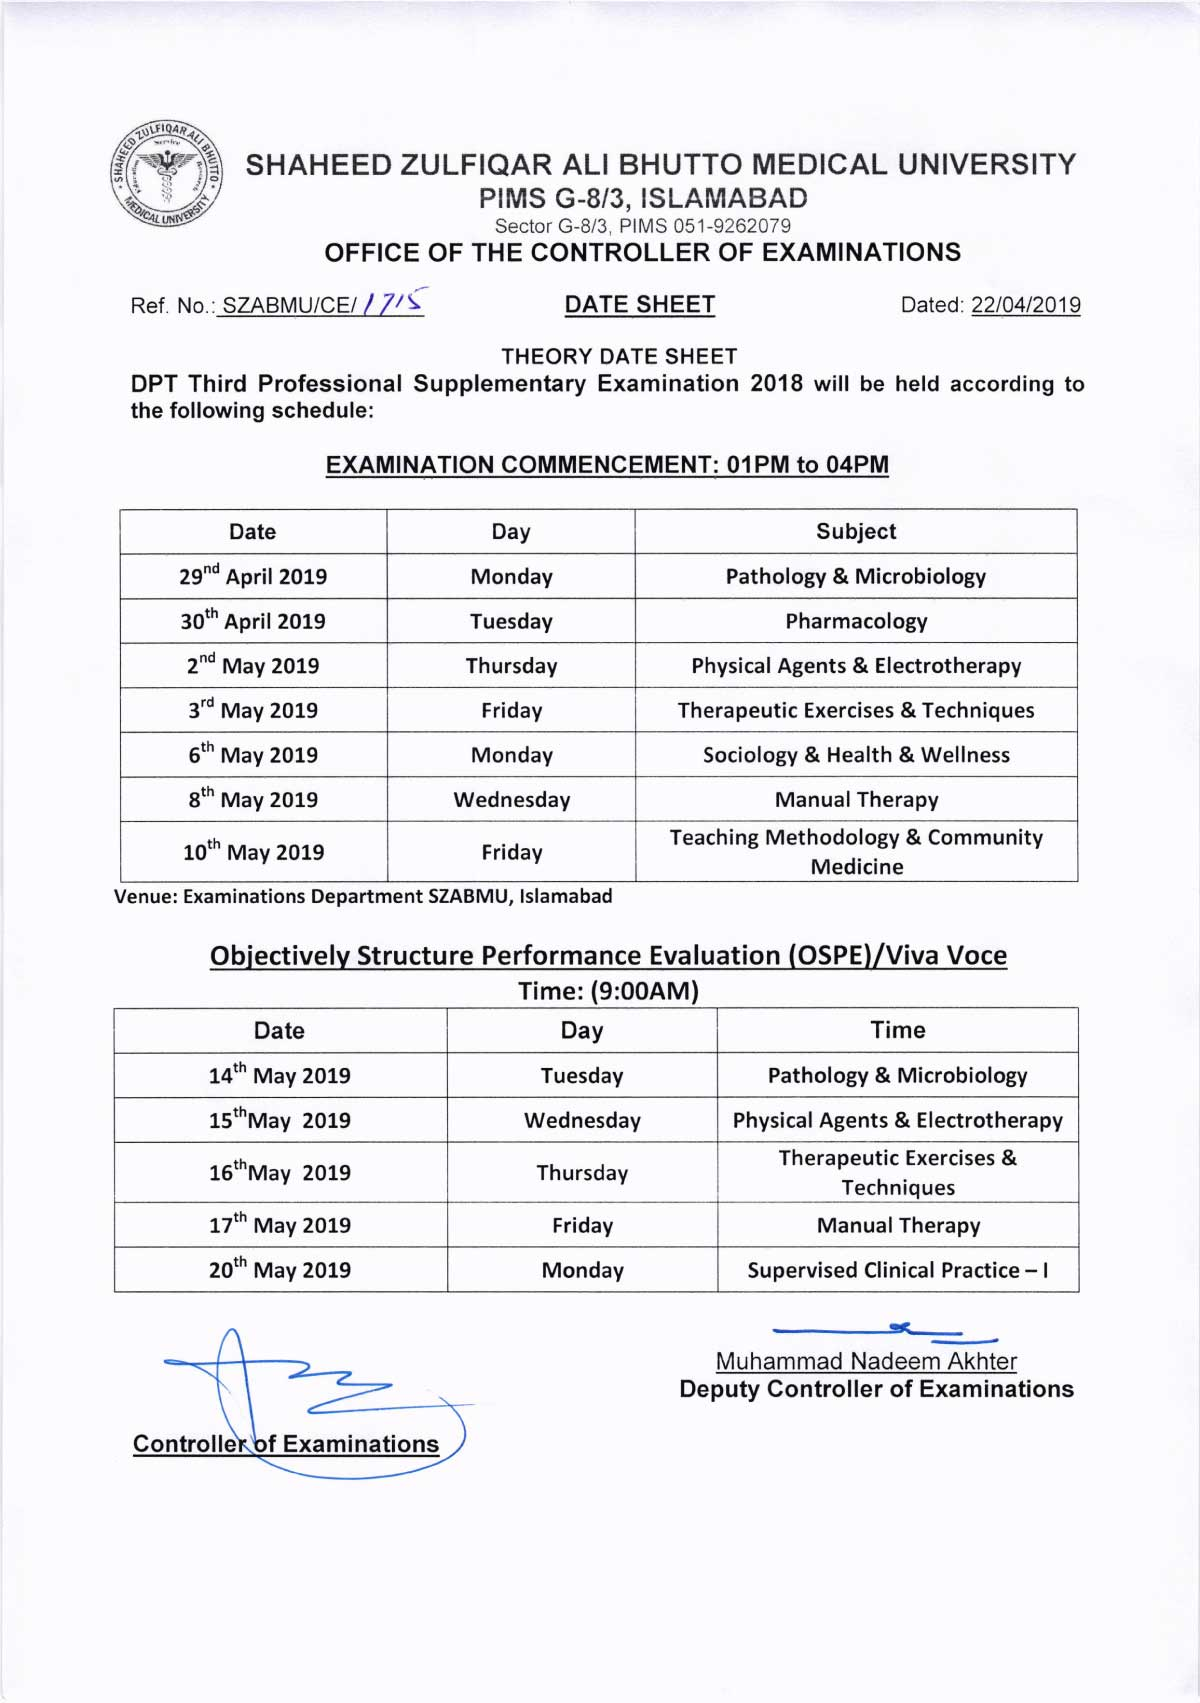 Date Sheet of DPT 1st, 2nd, 3rd & 4th Supplementary Examinations 2018